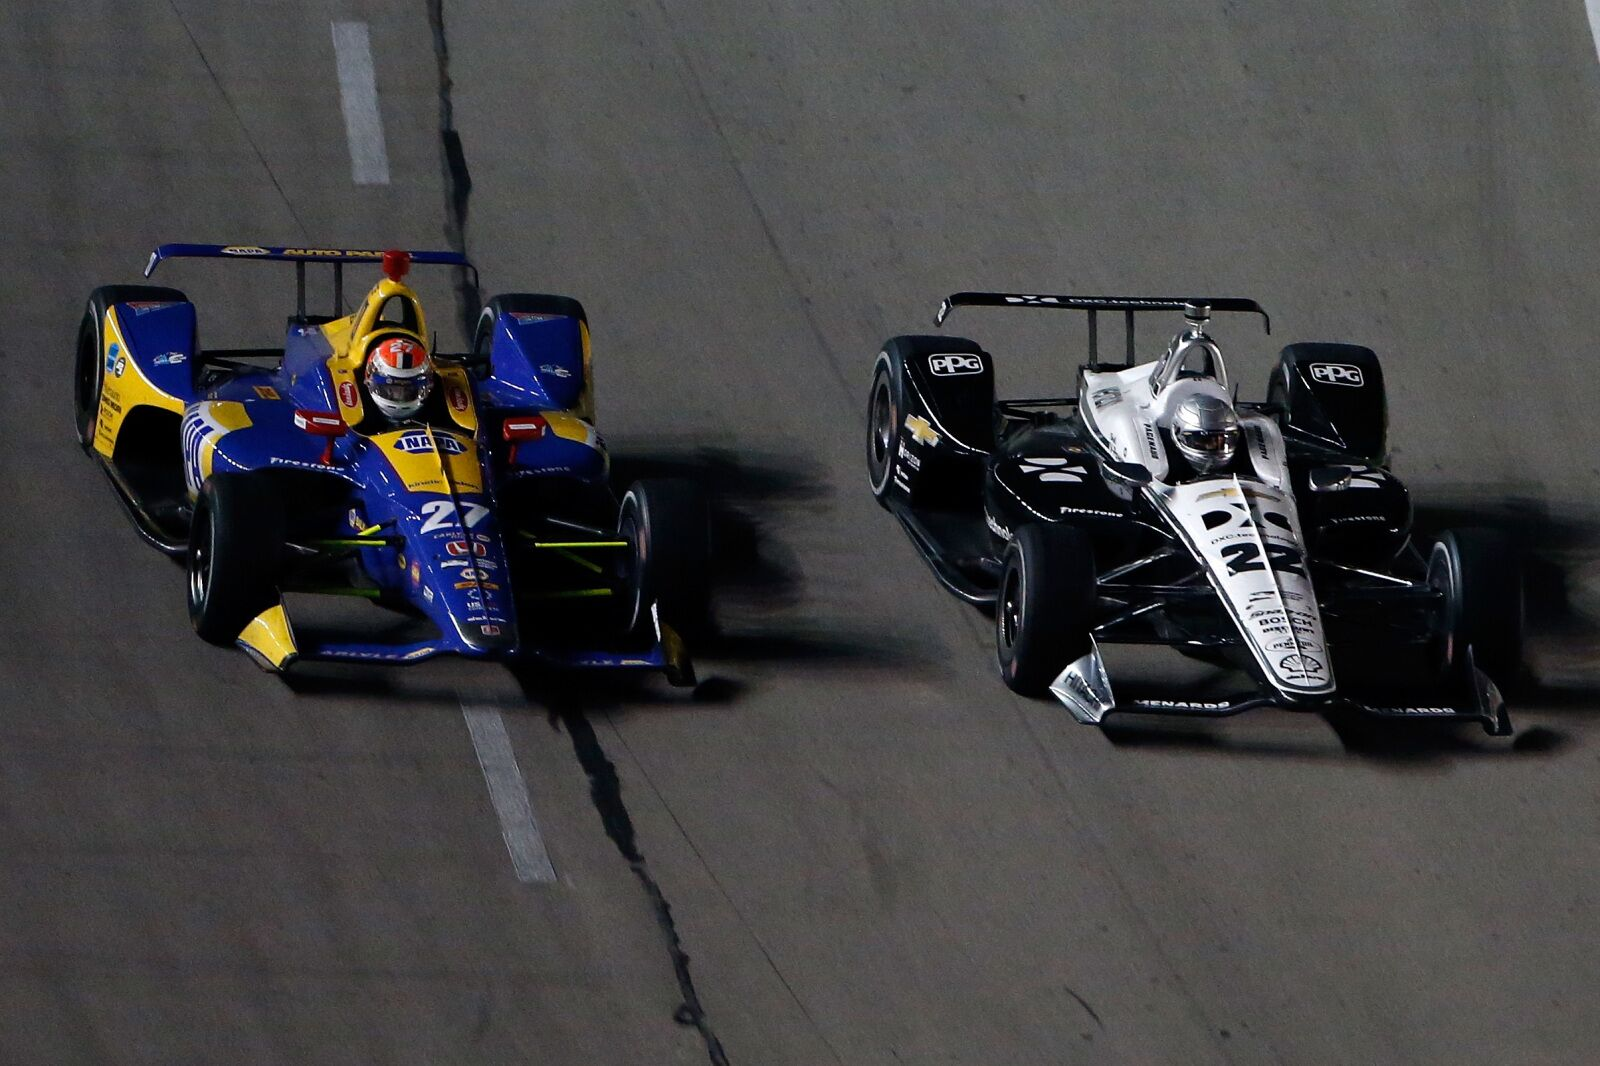 IndyCar: Will any championship contender stand out heading to Laguna Seca?